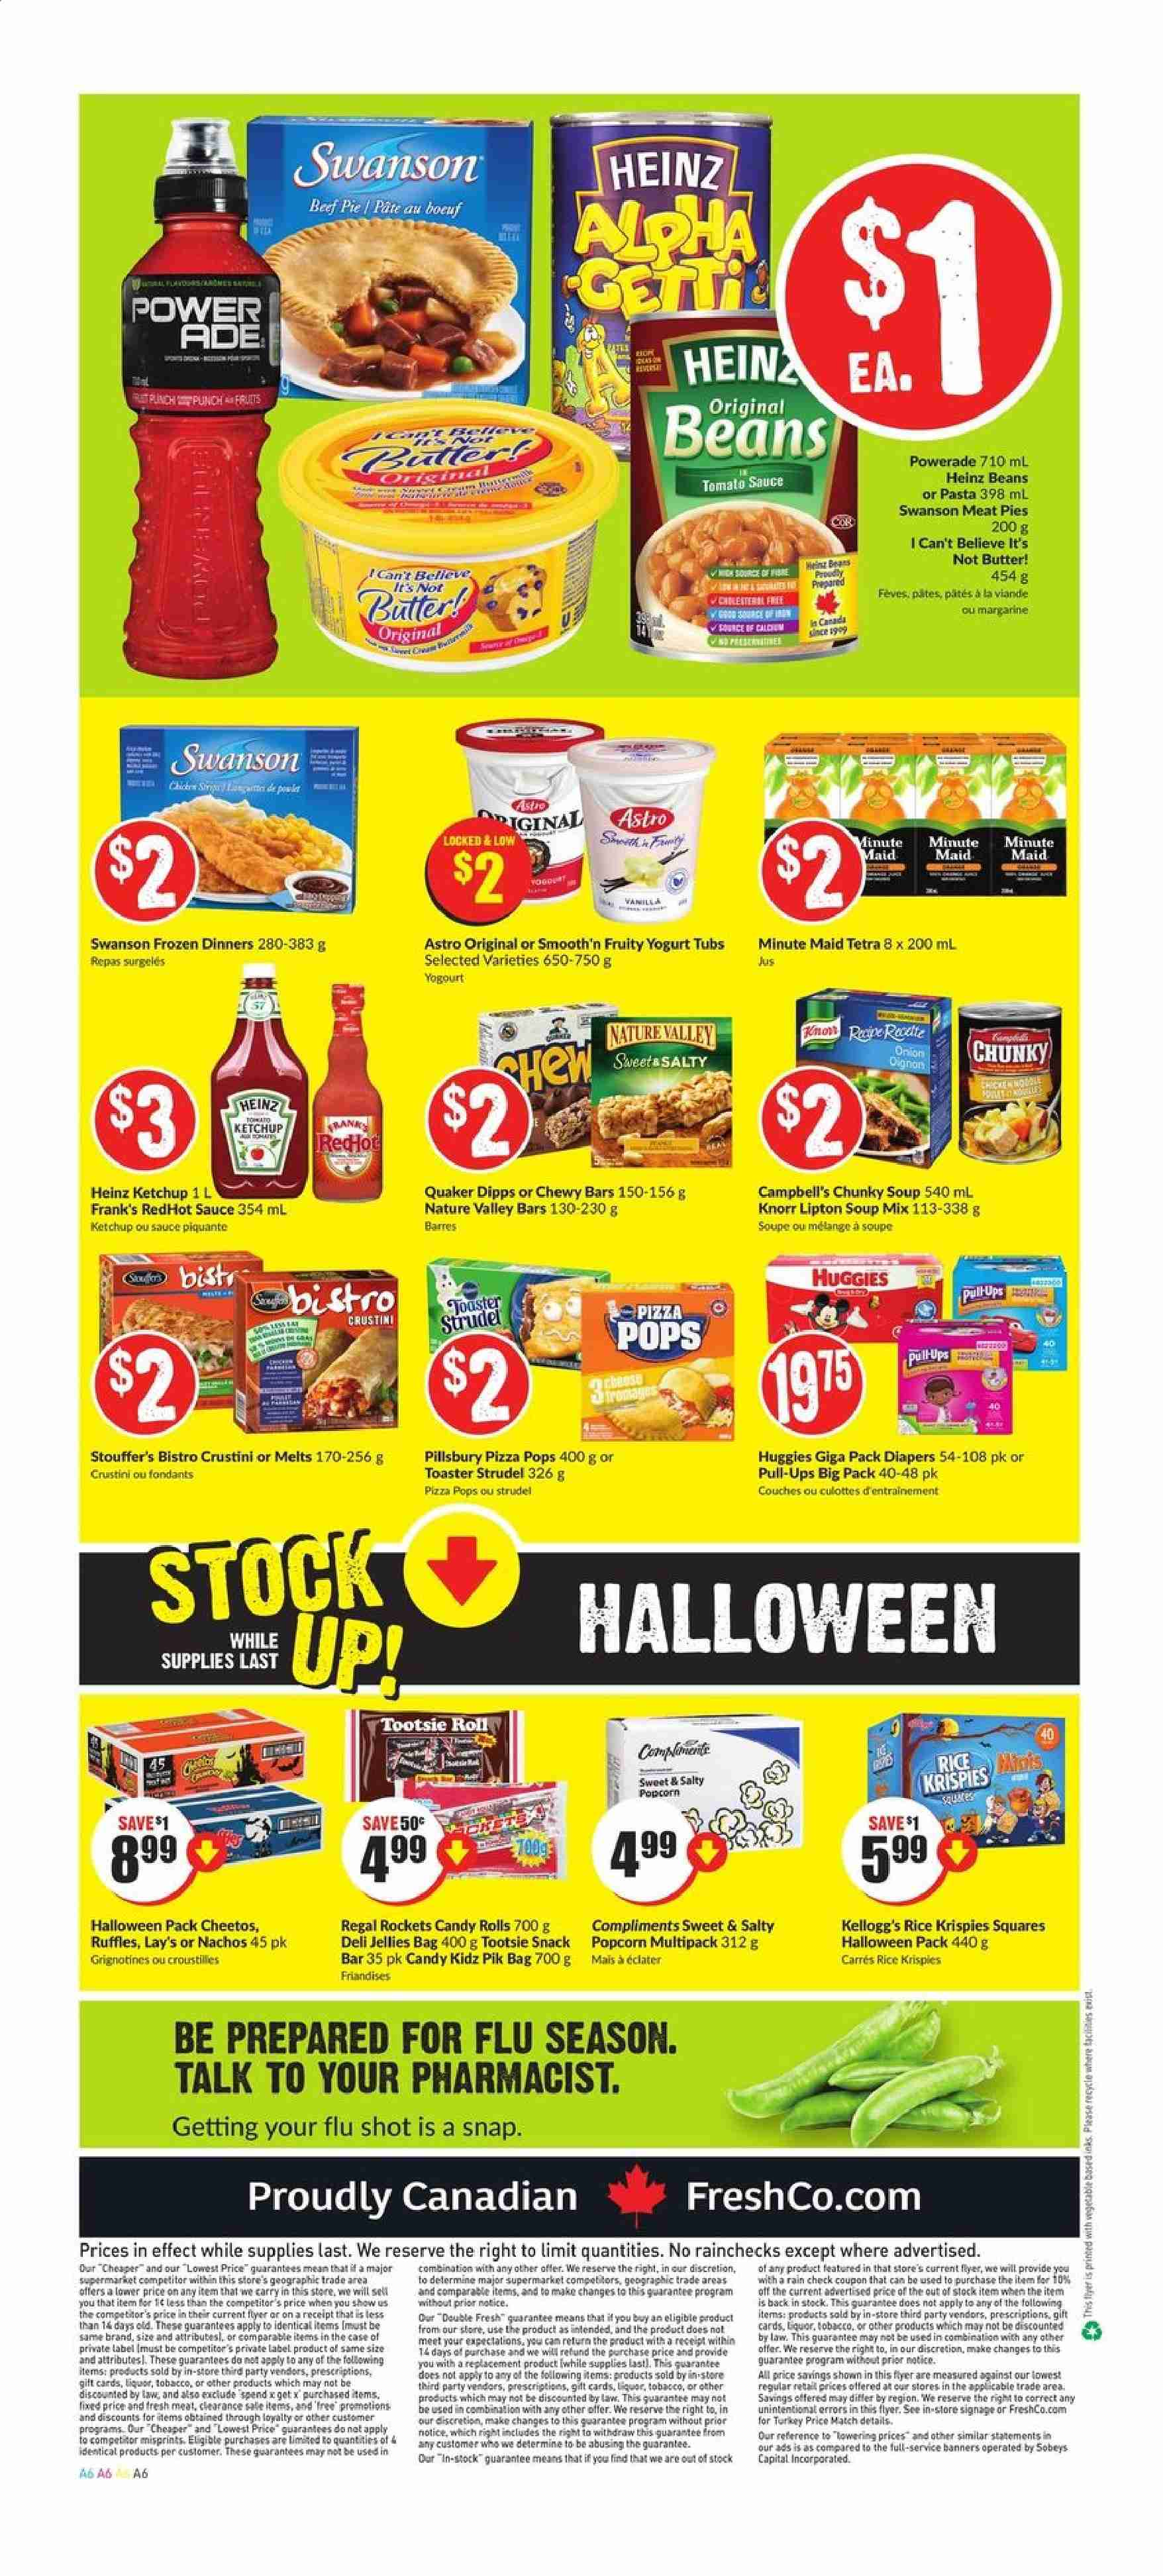 FreshCo. Flyer  - October 17, 2019 - October 23, 2019. Page 6.